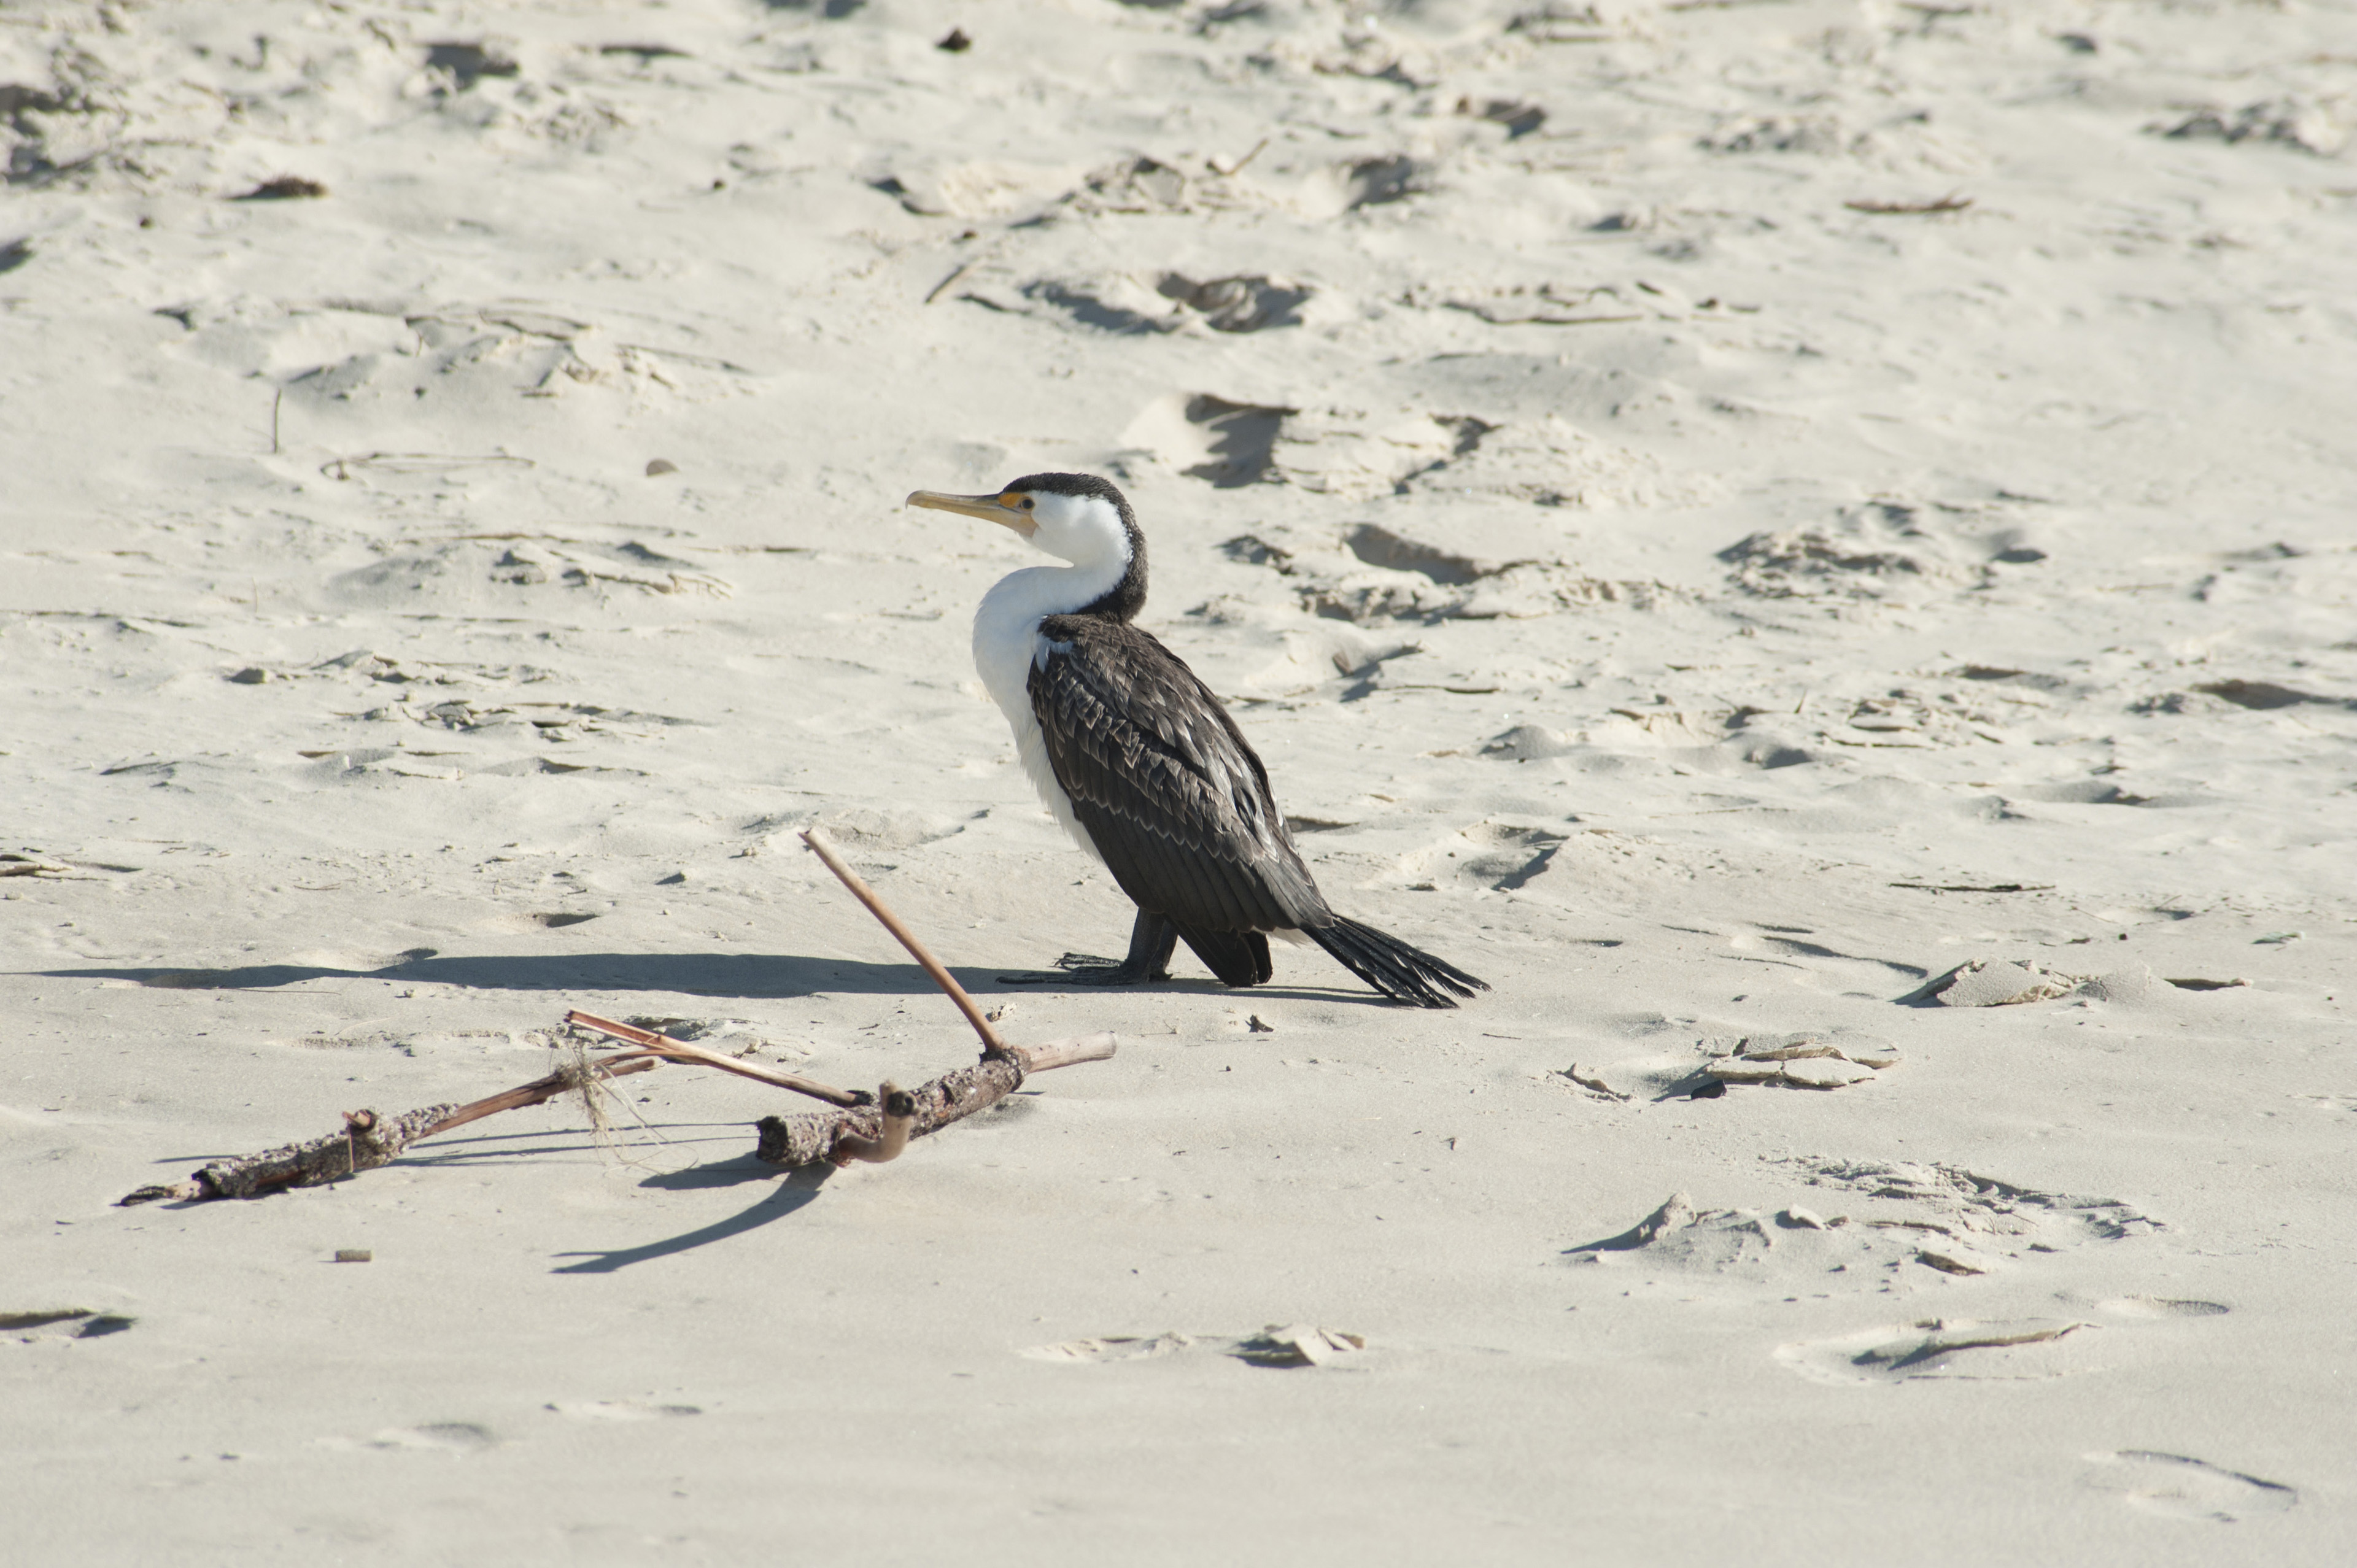 Alert solitary adult cormorant standing on a sandy beach in the sunshine, side view